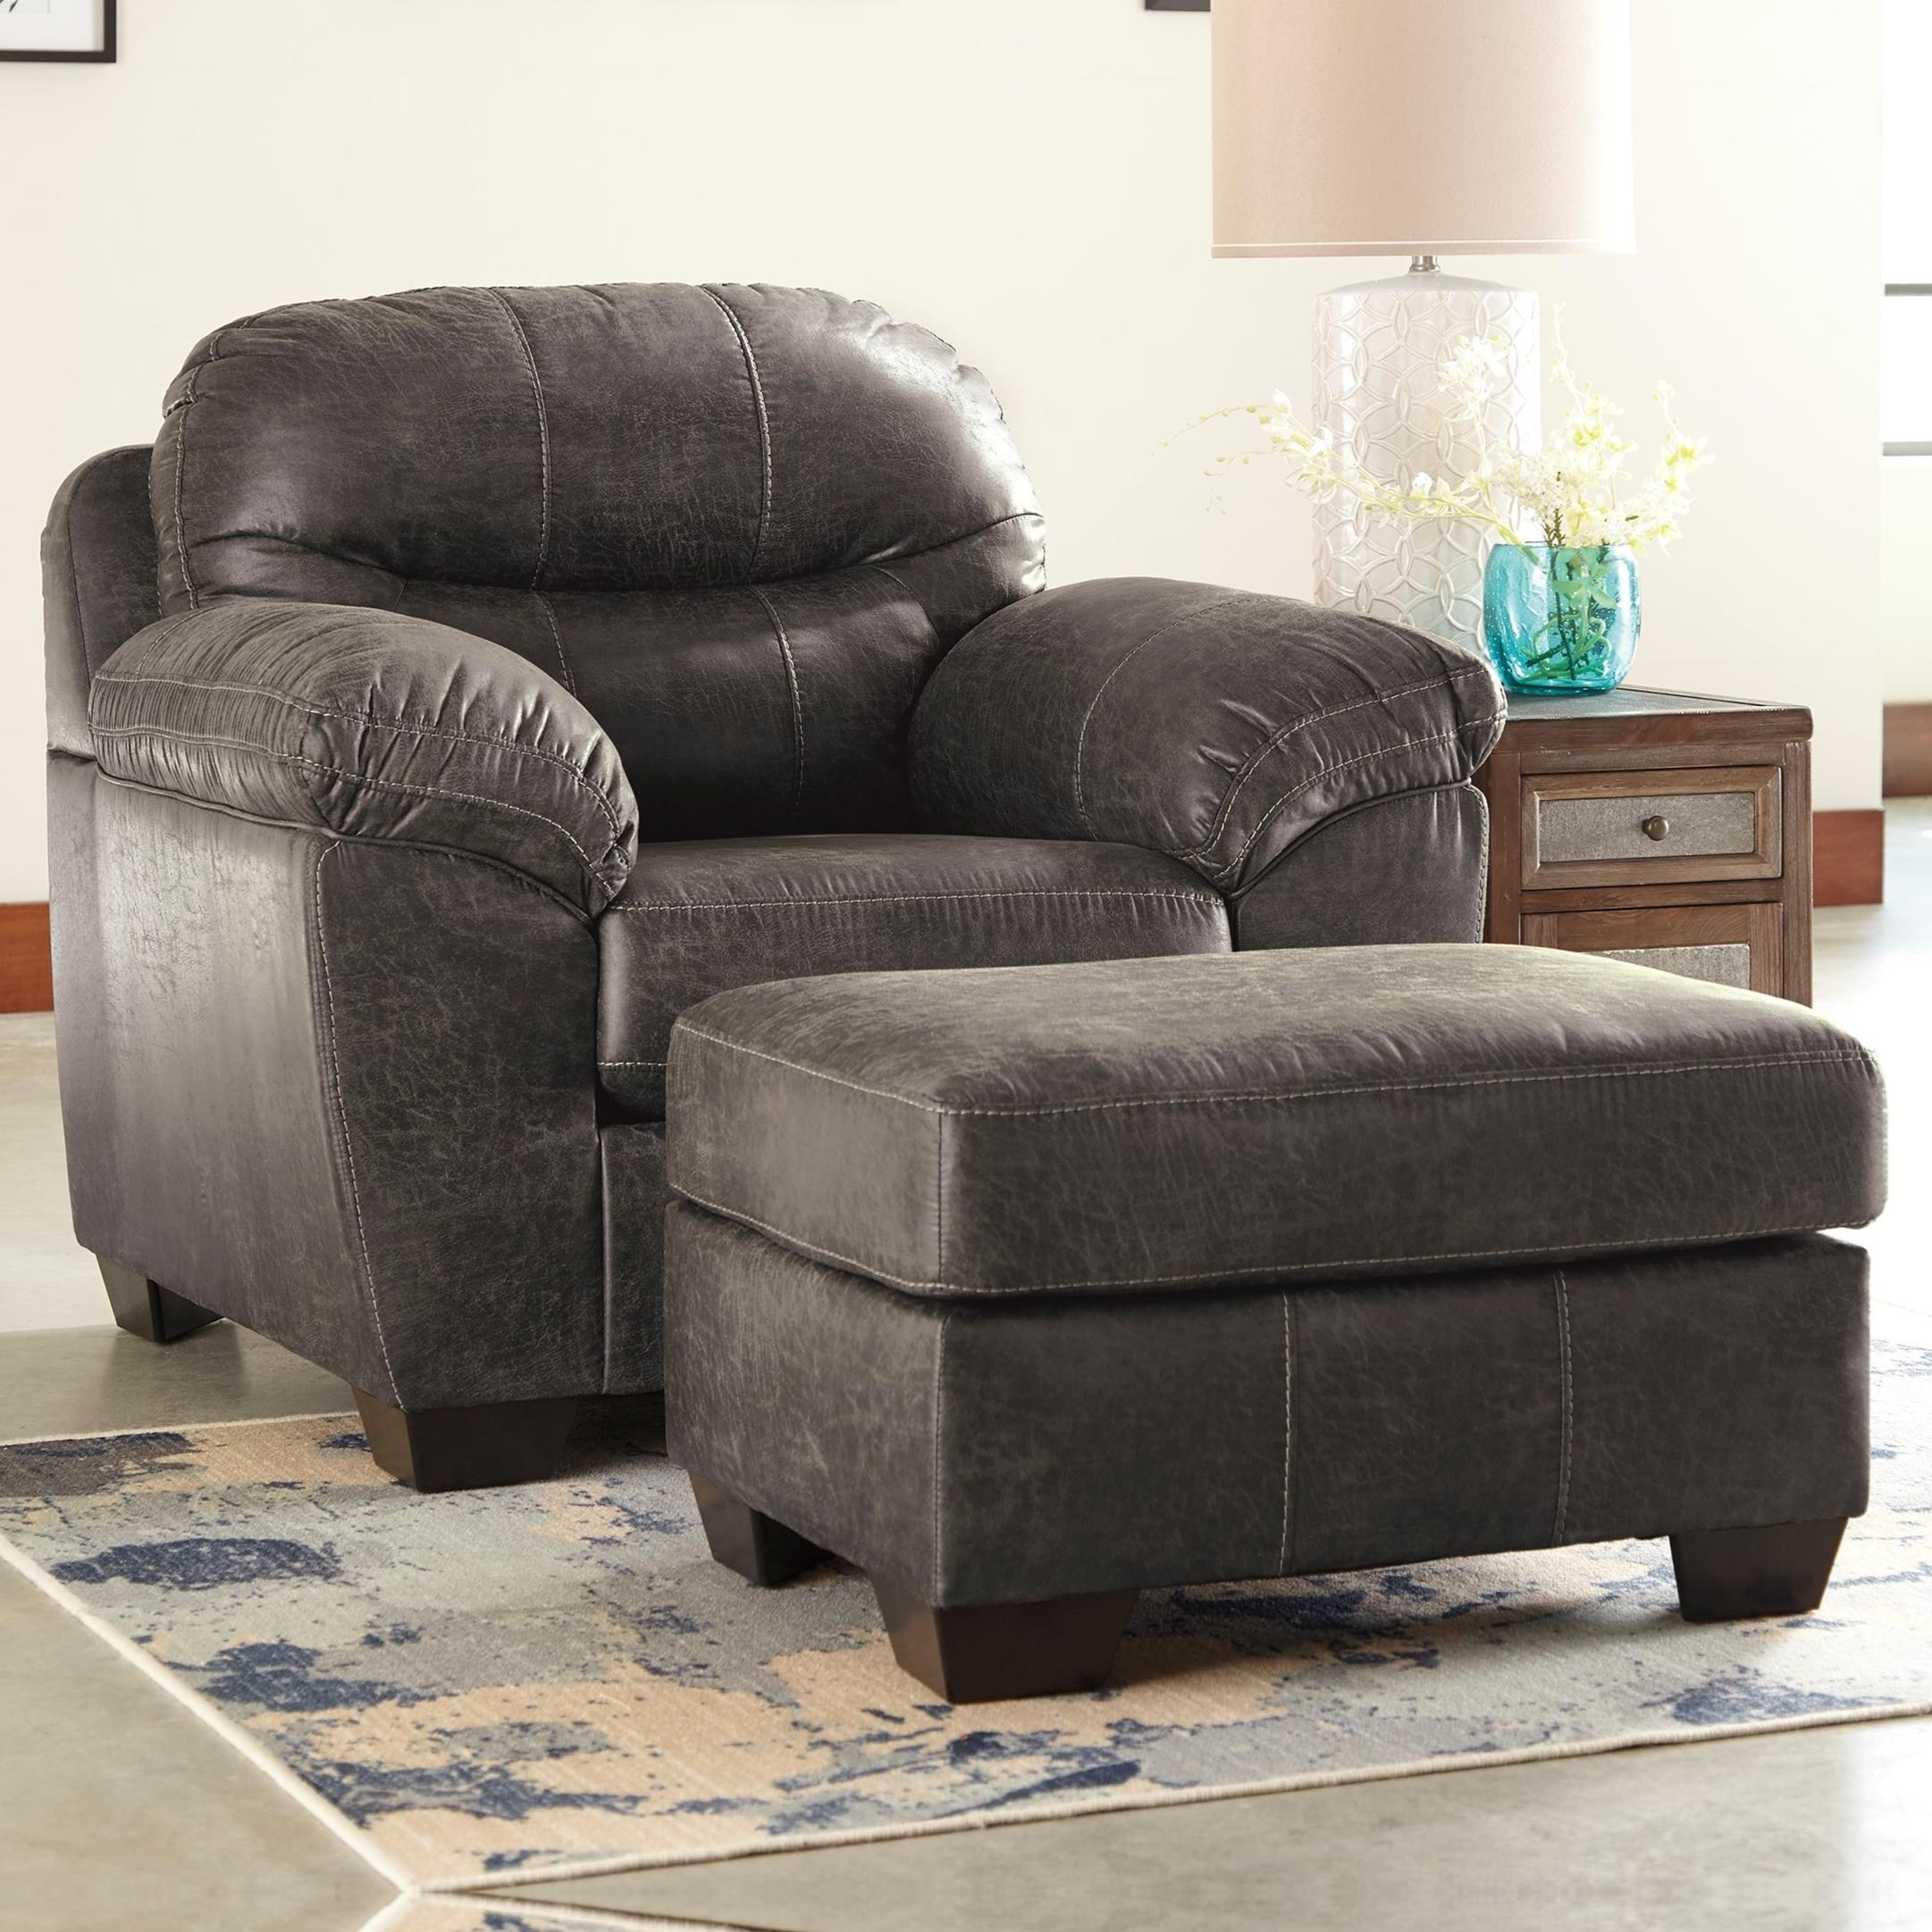 Benchcraft Havilyn Chair & Ottoman - Item Number: 3370520+14